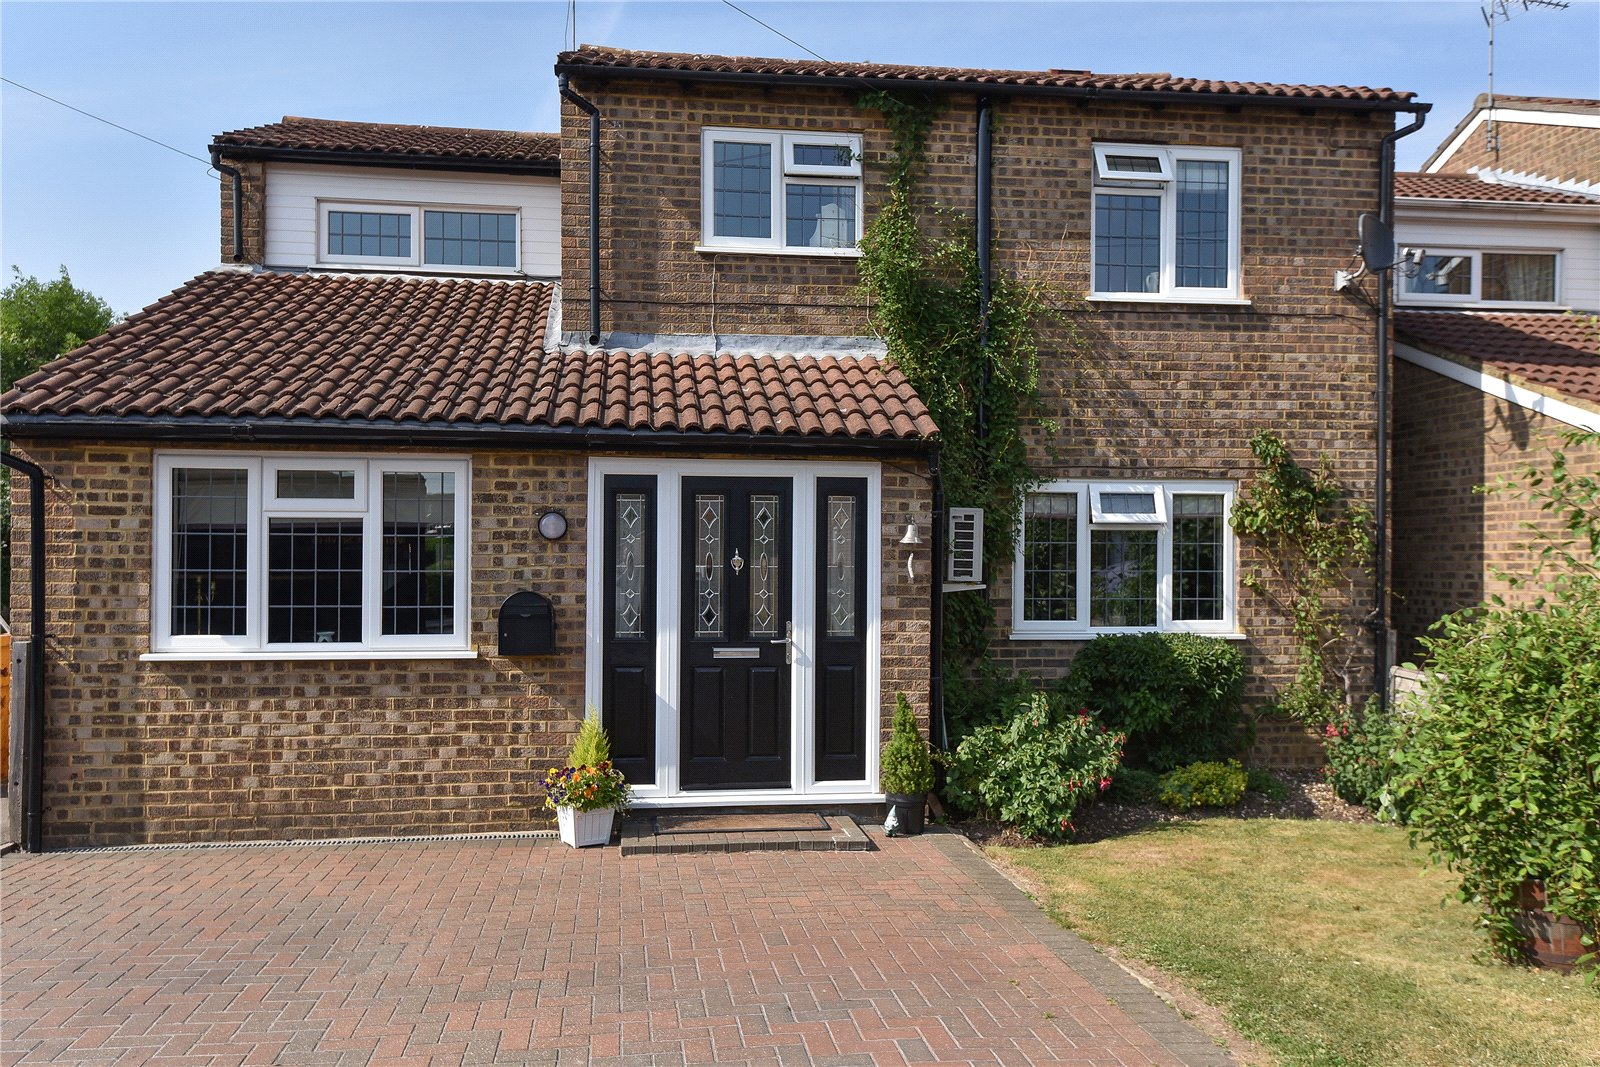 4 Bedrooms Detached House for sale in Aysgarth Park, Maidenhead, Berkshire, SL6